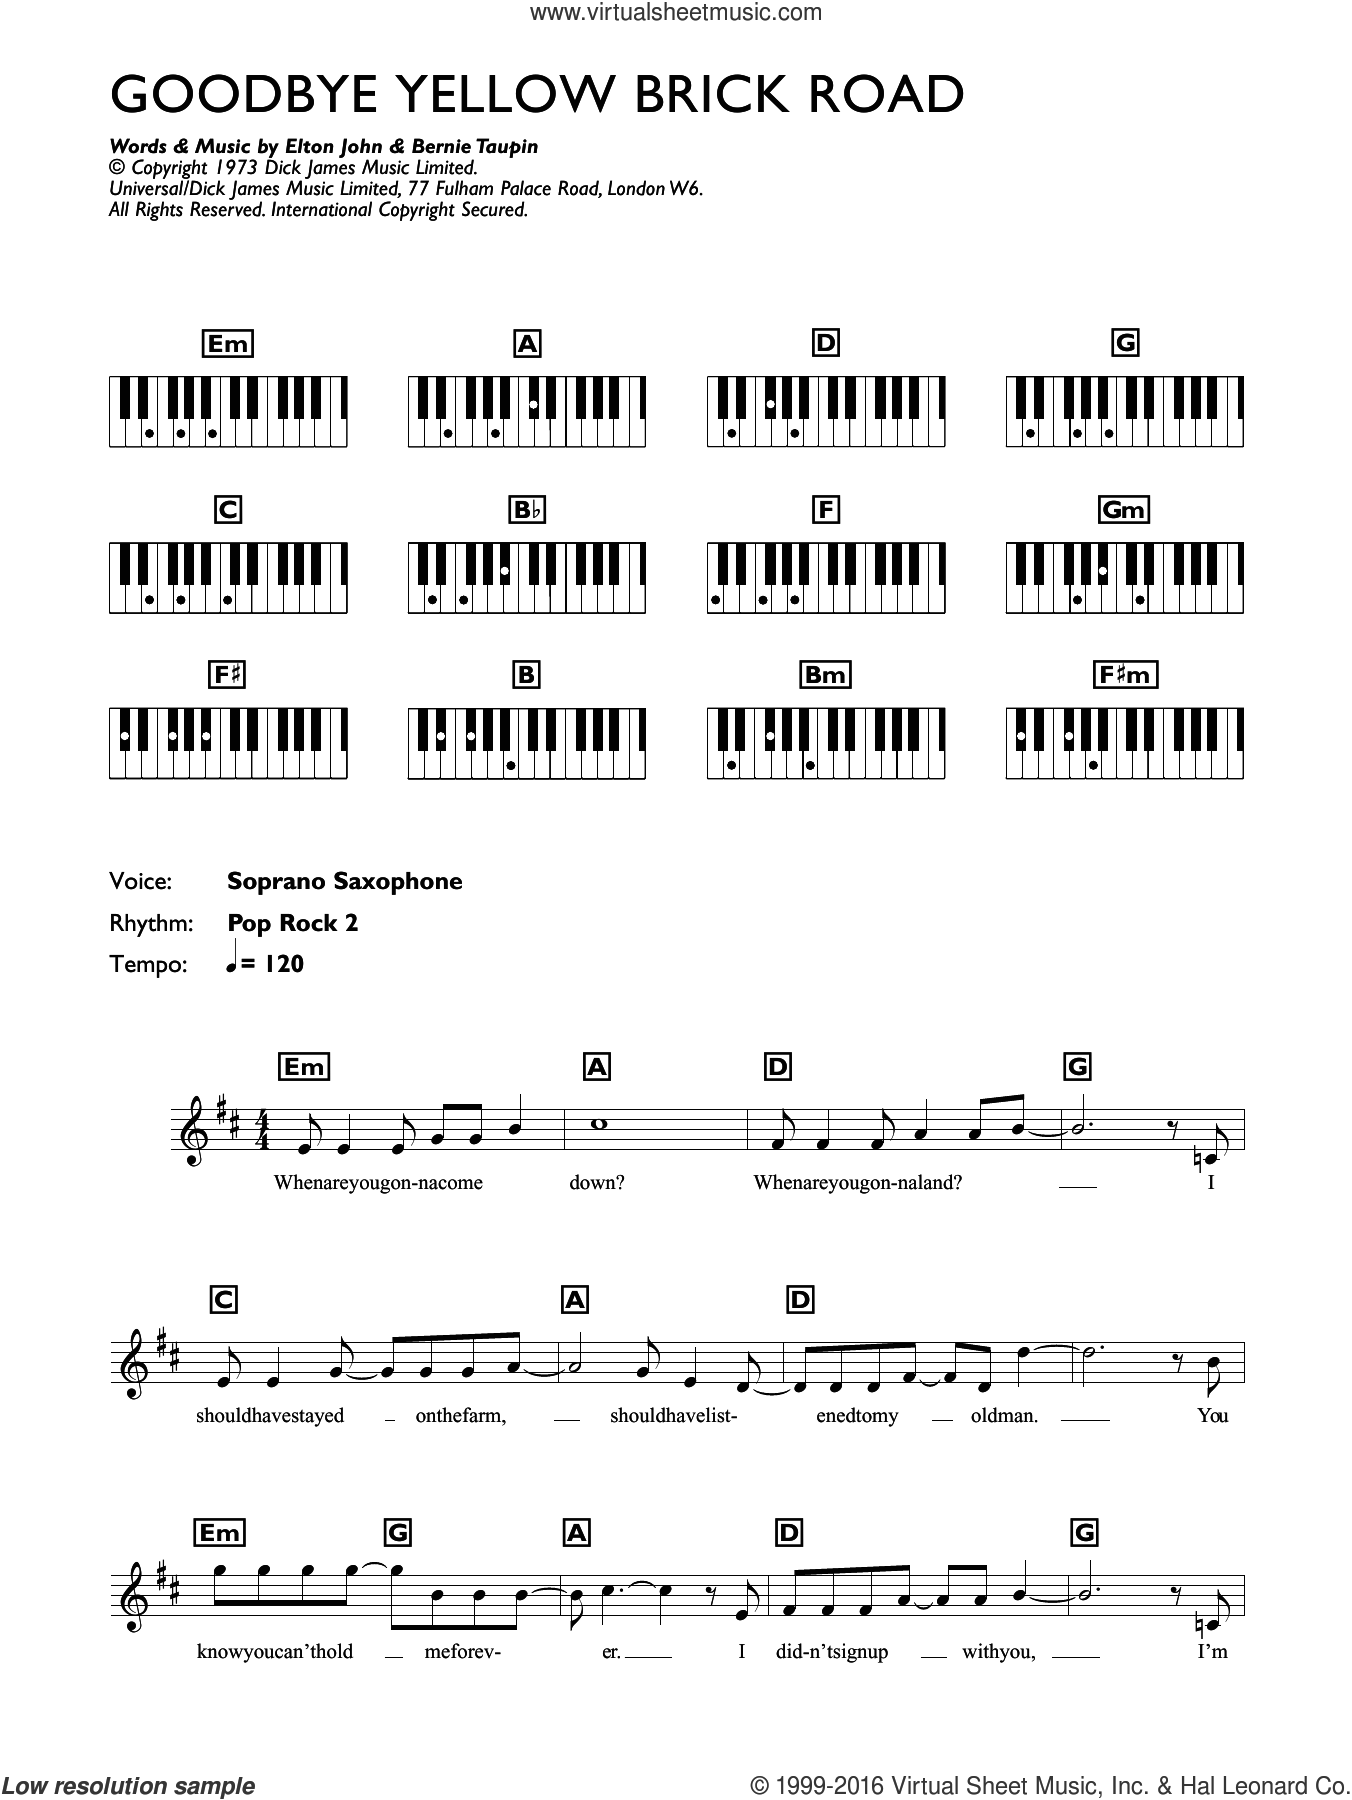 Goodbye Yellow Brick Road sheet music for piano solo (chords, lyrics, melody) by Elton John and Bernie Taupin, intermediate piano (chords, lyrics, melody). Score Image Preview.